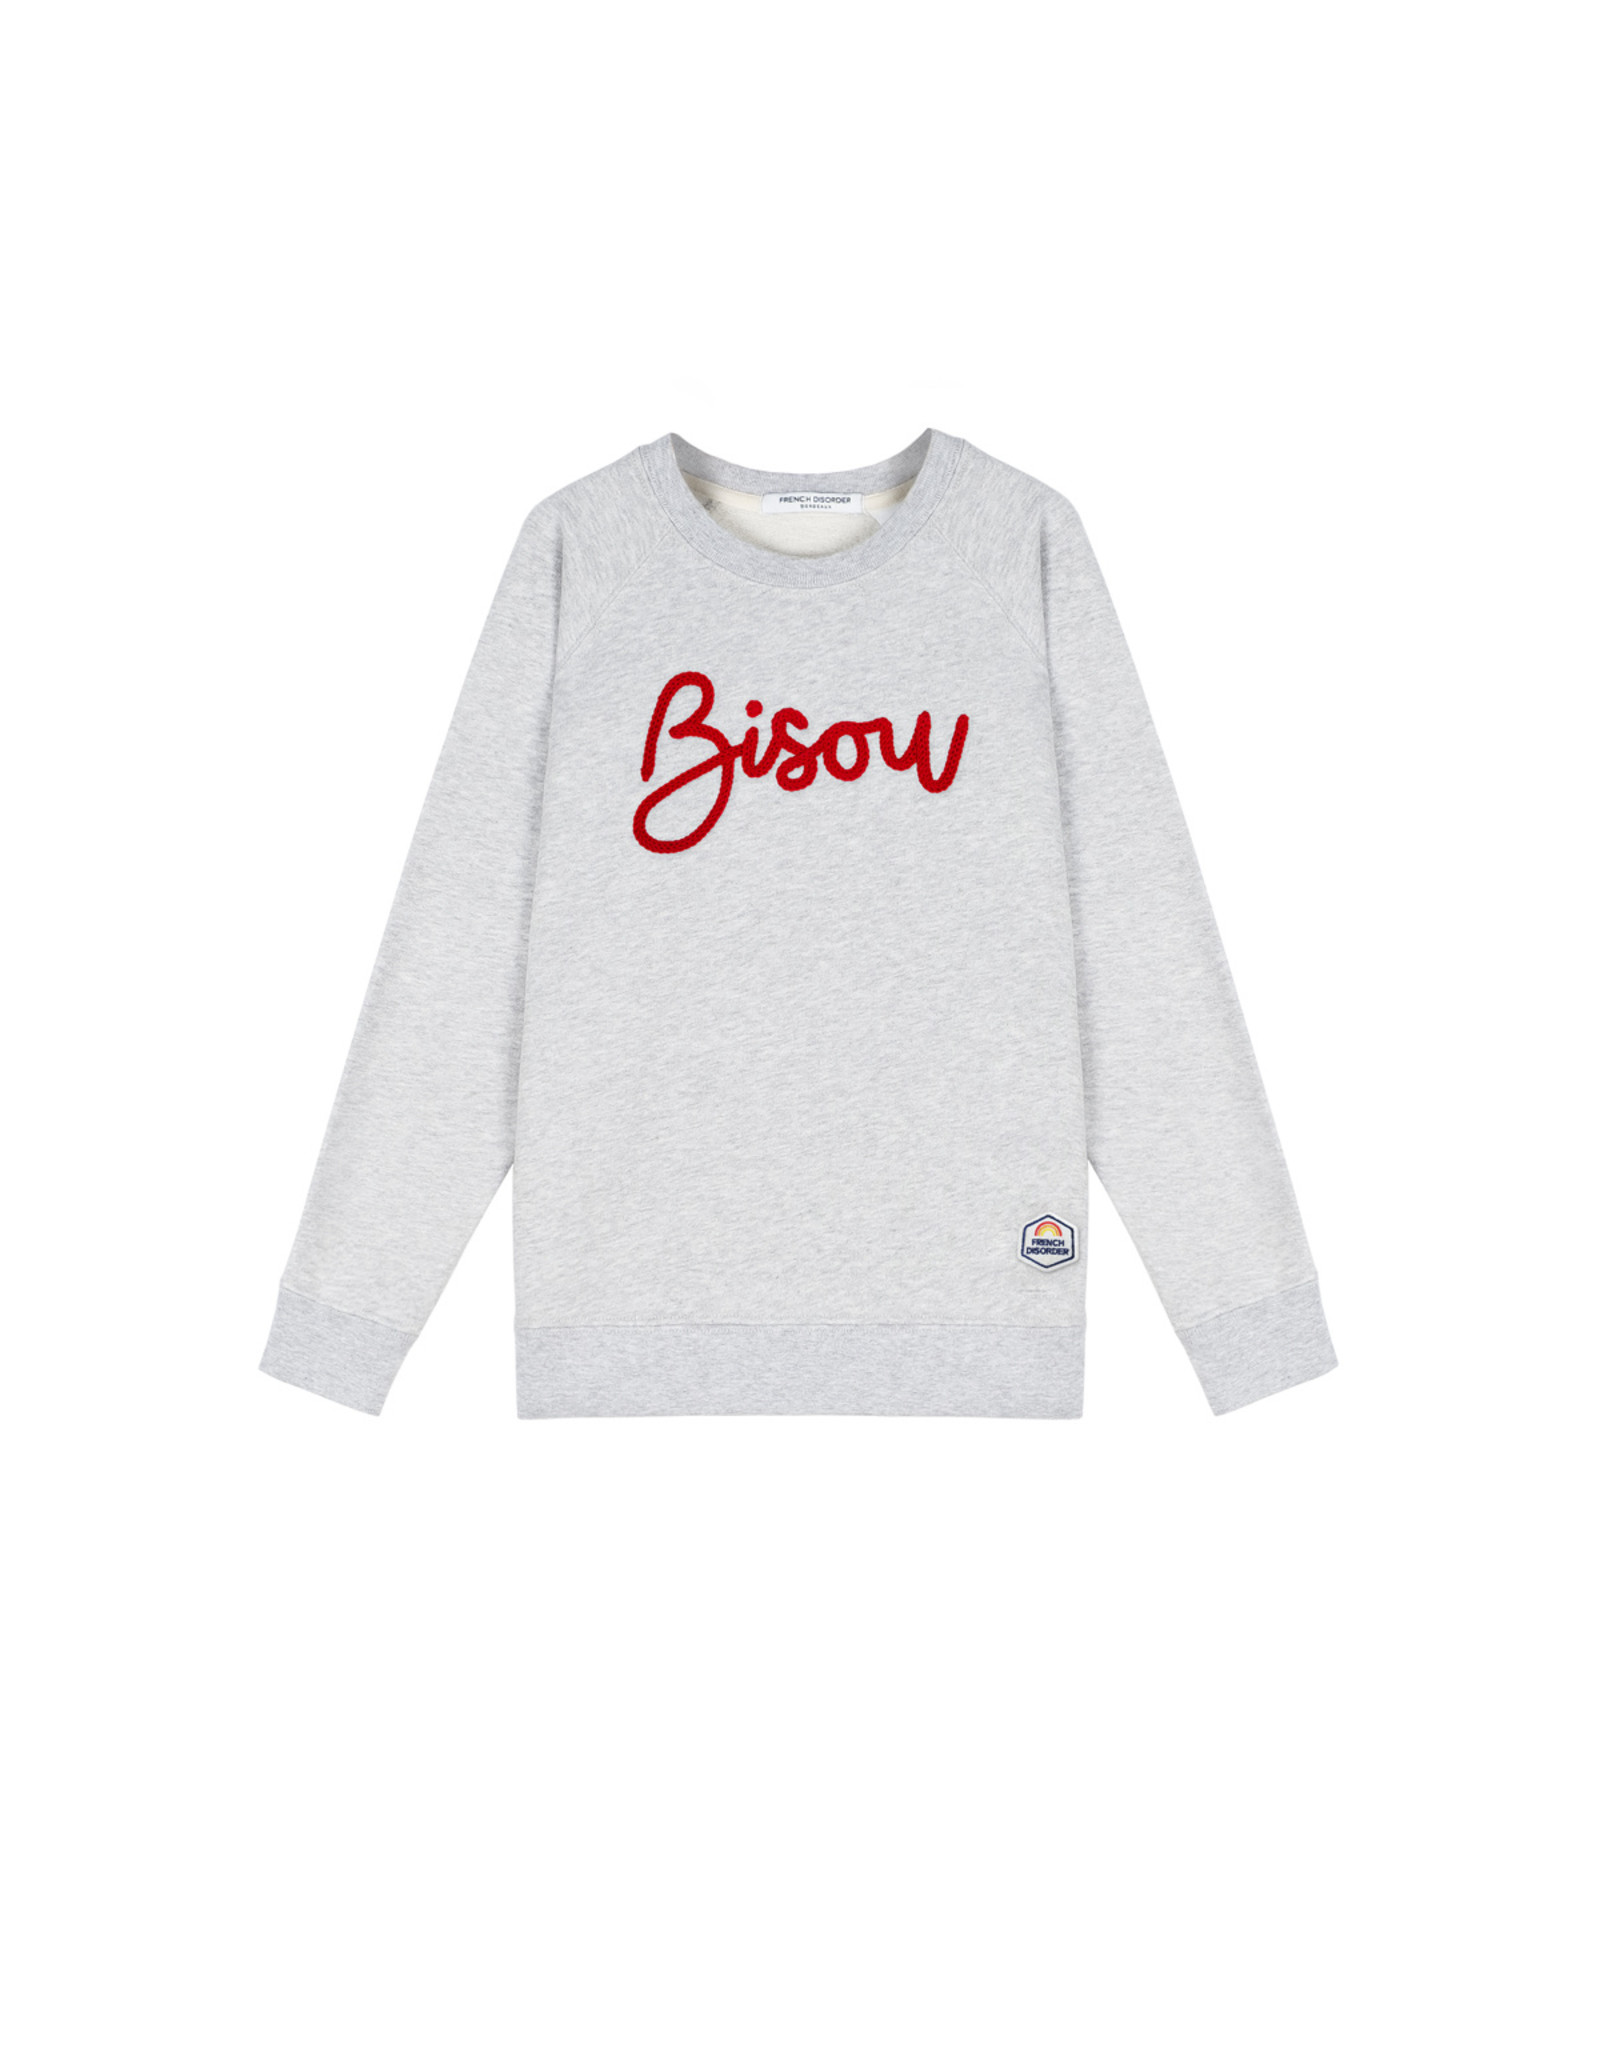 FRENCH DISORDER FRENCH DISORDER Sweater Bisou